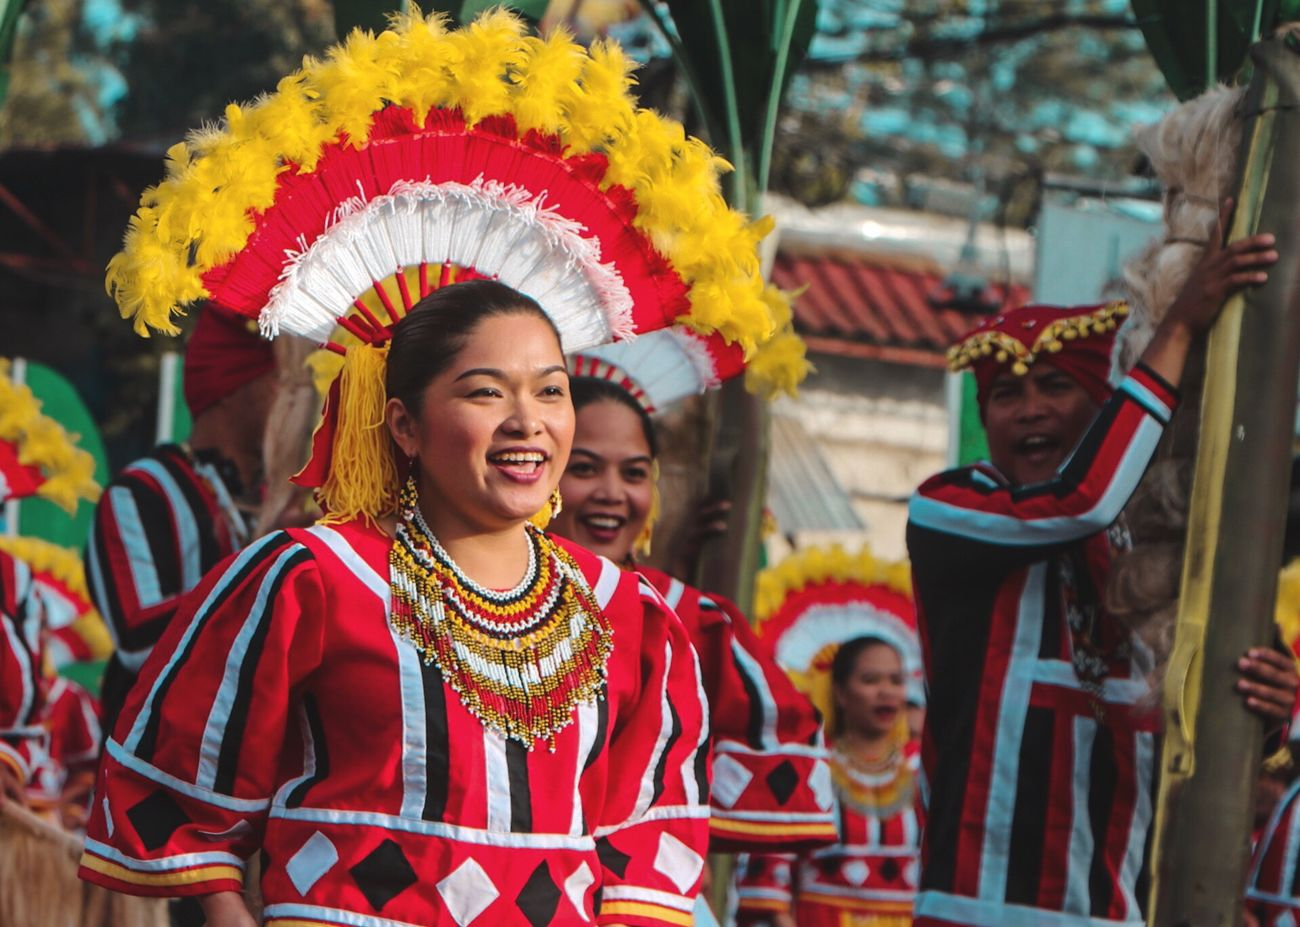 Kaamulan Festival 2017 Traditional Dancing Eyeem Philippines Cultures Costume Performance Smiling Young Adult Dancing Arts Culture And Entertainment Celebration Fun Dancer Focus On Foreground Tradition Headshot Happiness Headdress Traditional Festival Day Enjoyment The Portraitist - 2017 EyeEm Awards The Journalist - 2017 EyeEm Awards